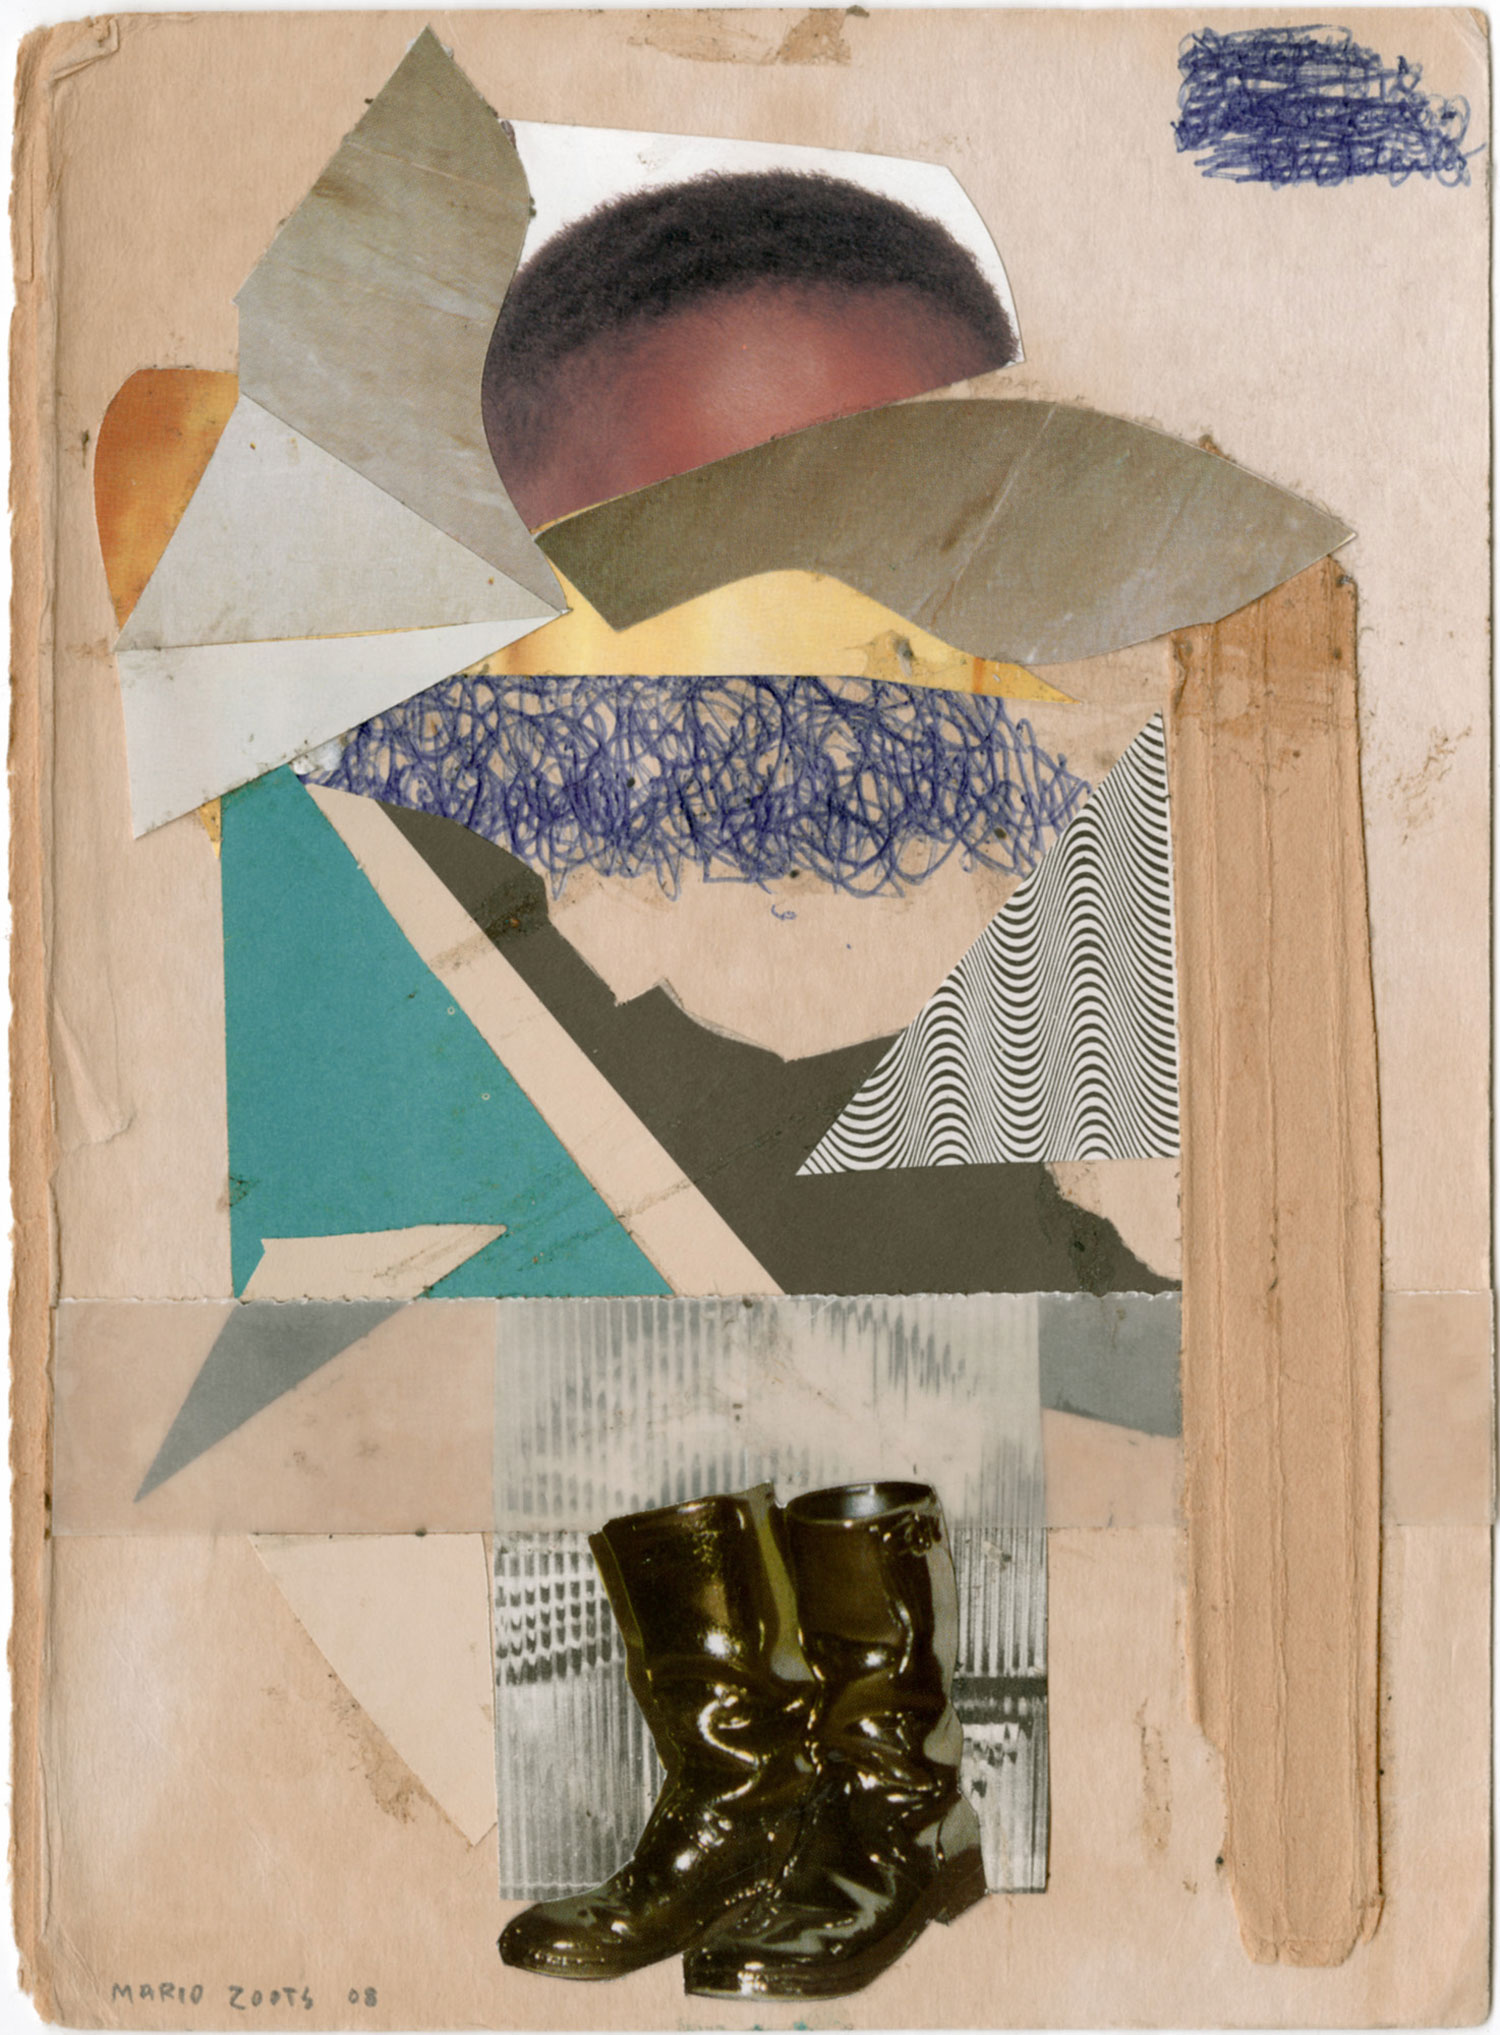 Zoots_Study-#1_6x10-inch_Collage-on-Paper_1000.jpg